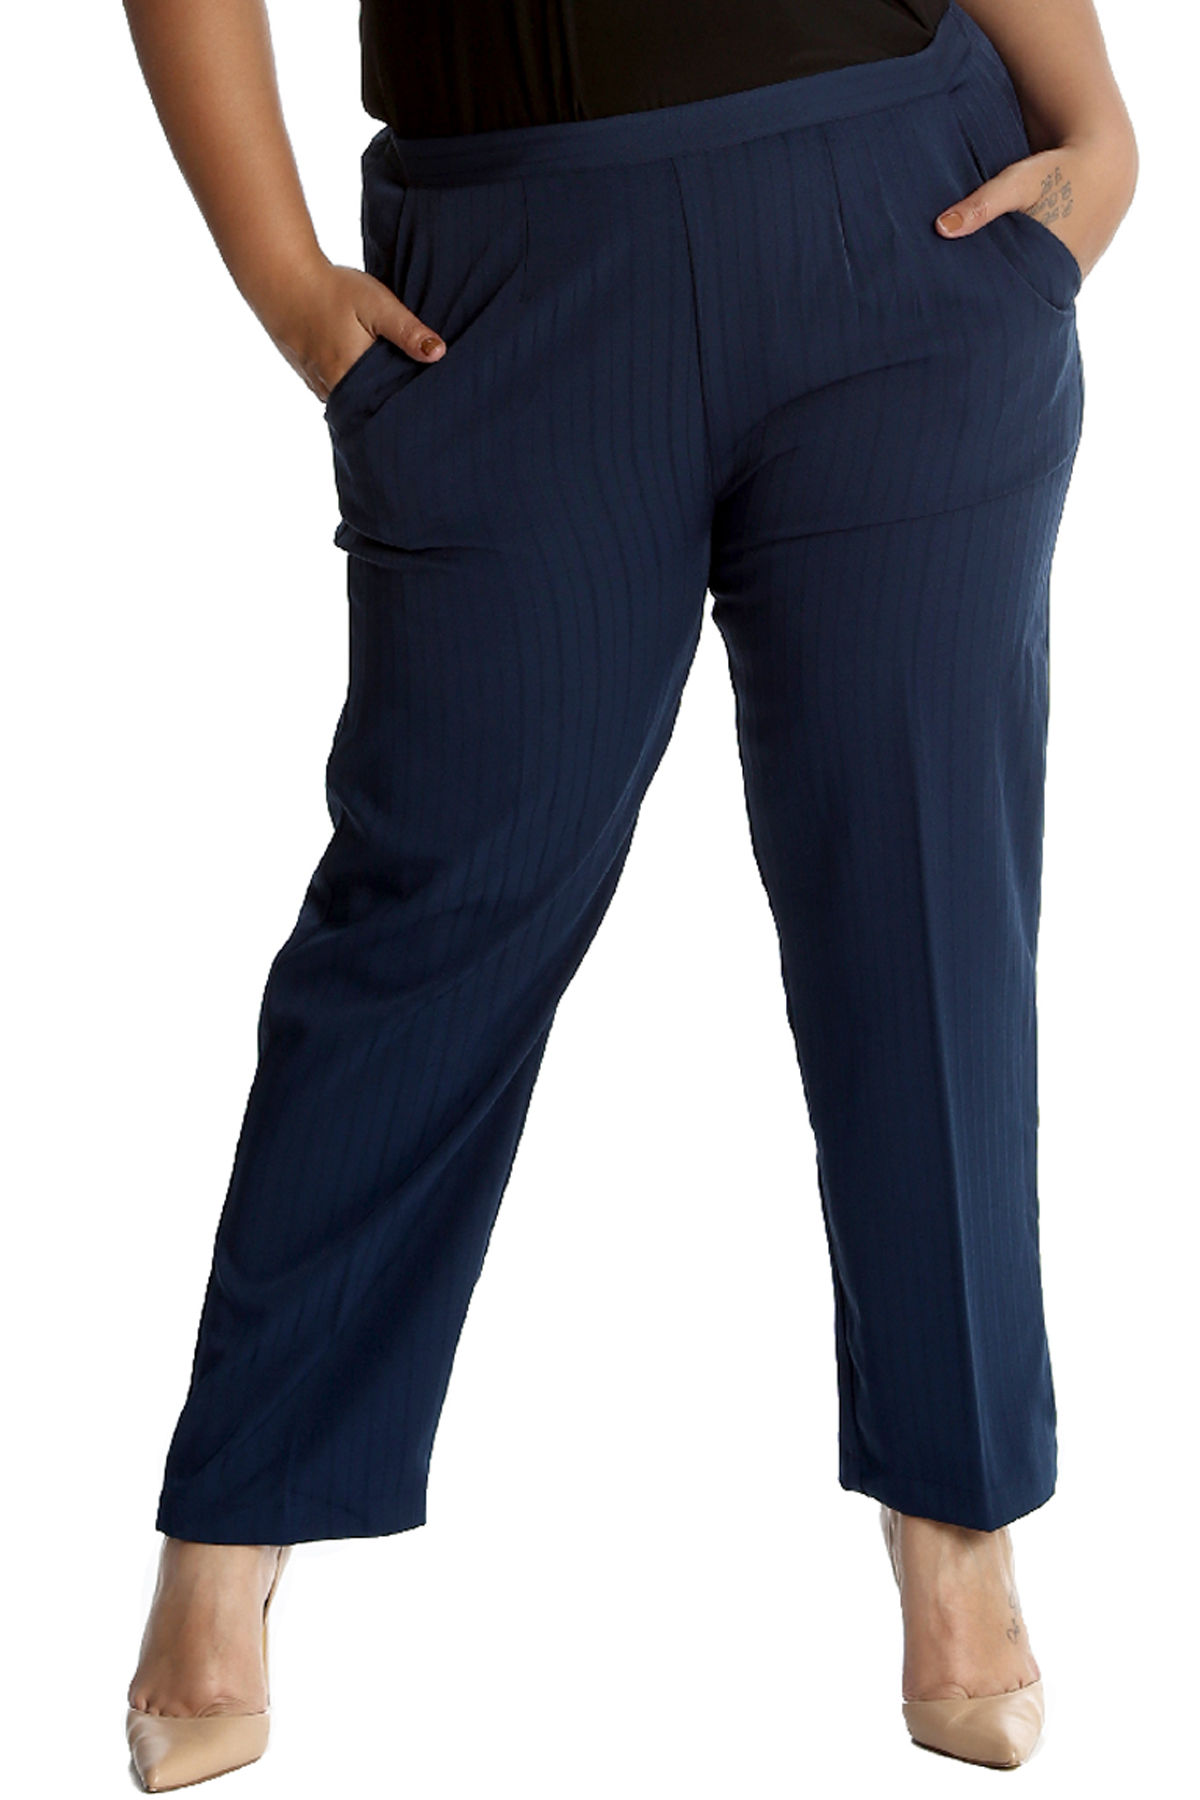 New Womens Trousers Plus Size Ladies Pants Self Stripe Pockets Formal Long Sale | EBay